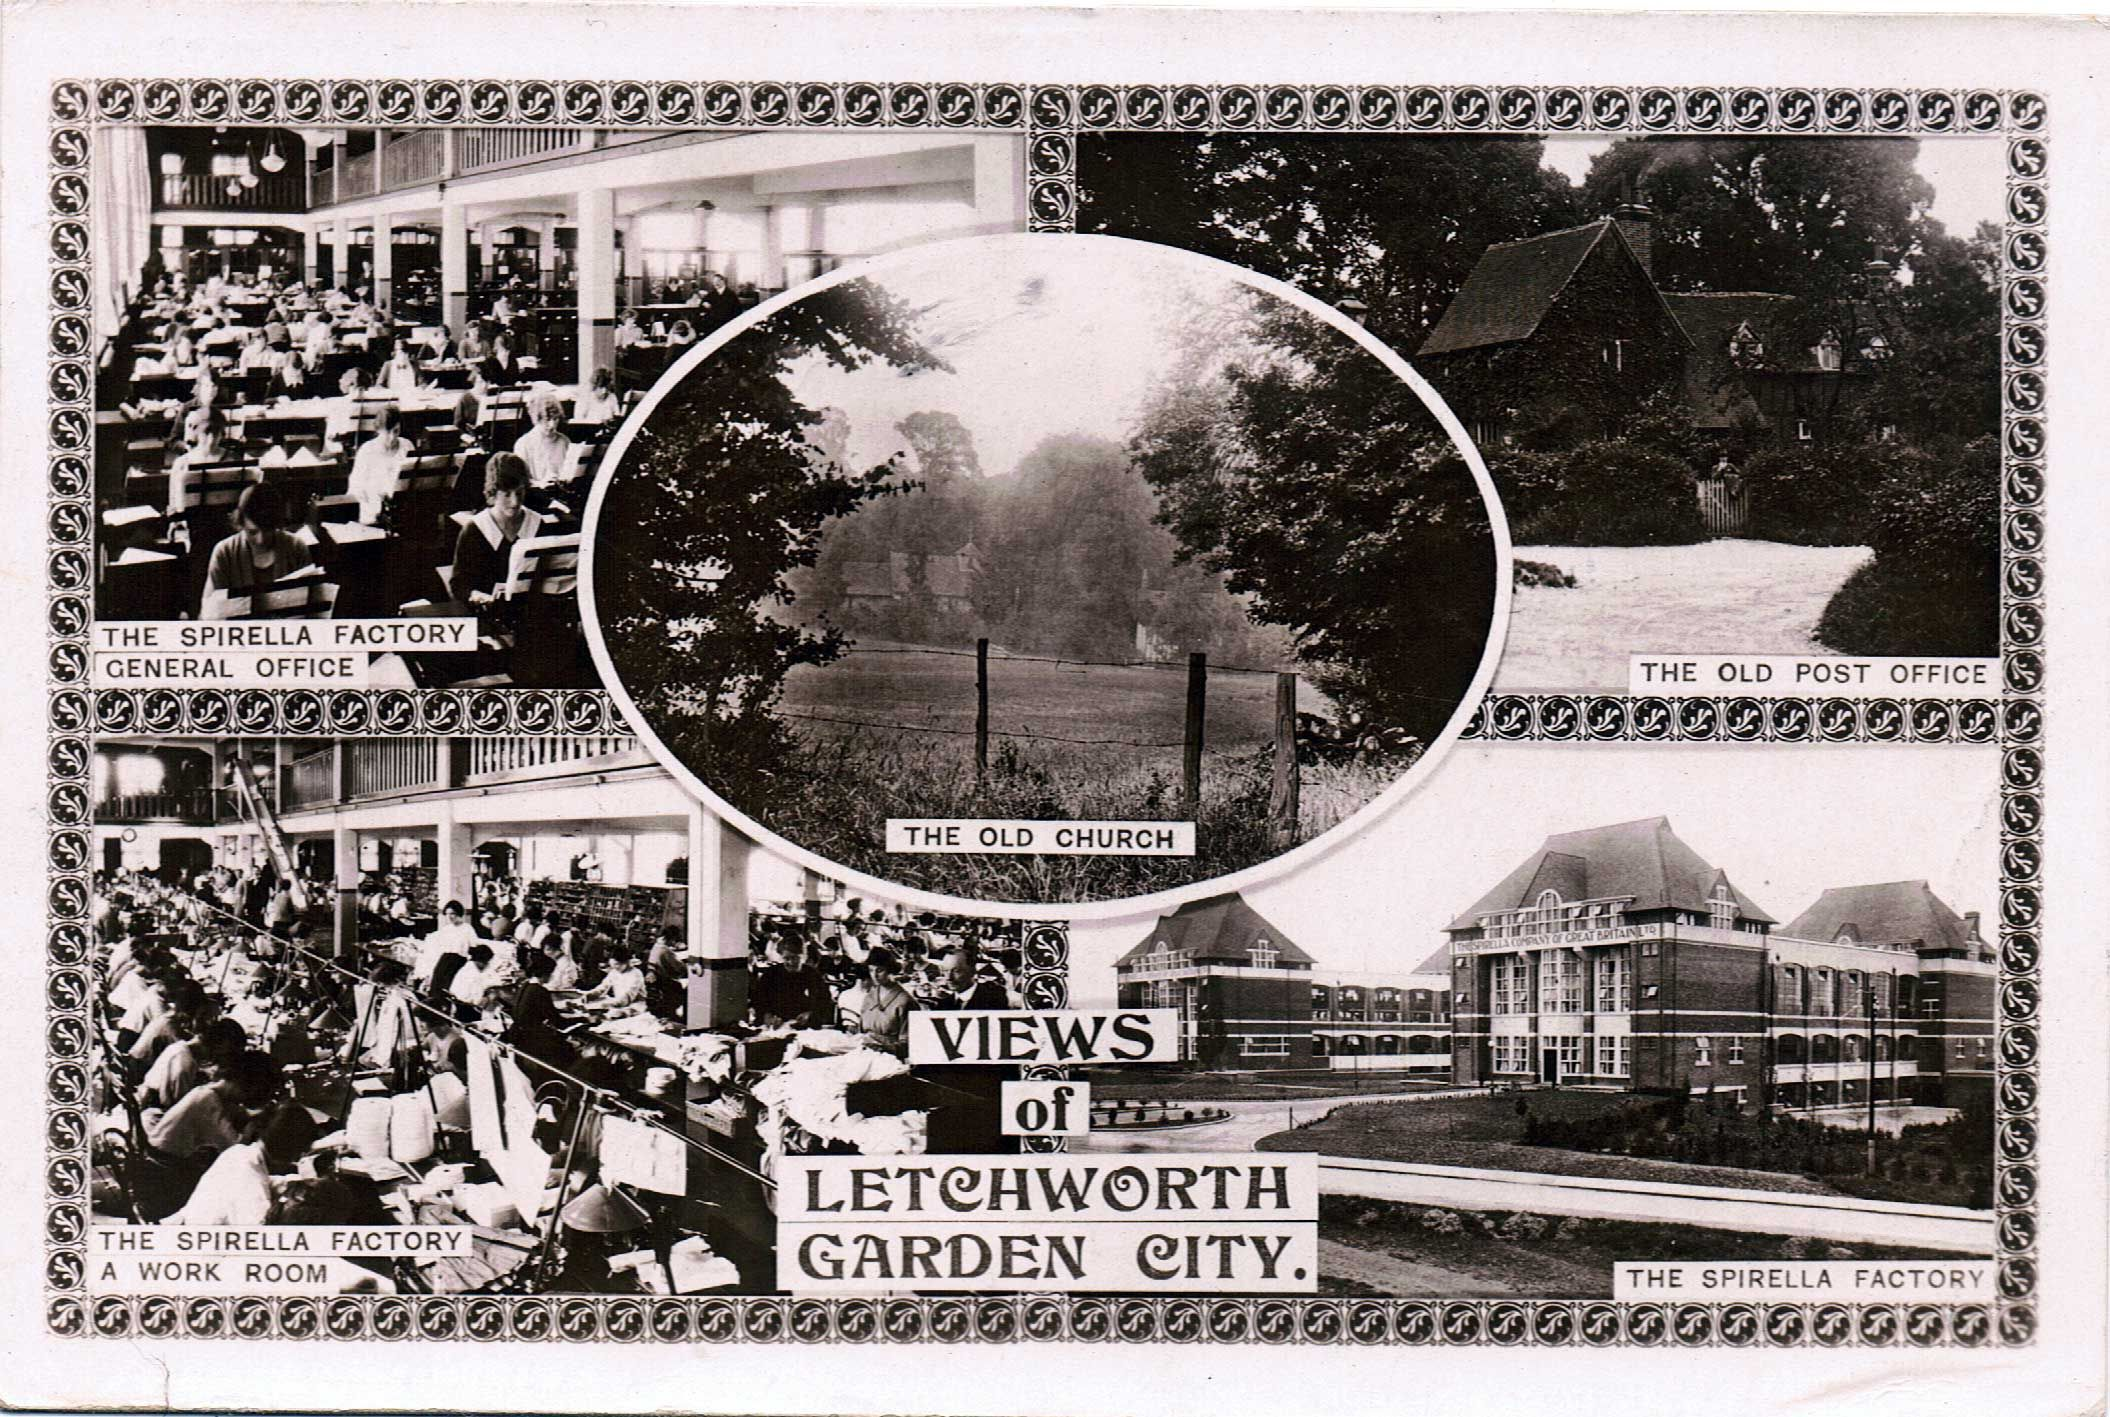 Letchworth Garden City Letchworth garden city, Garden